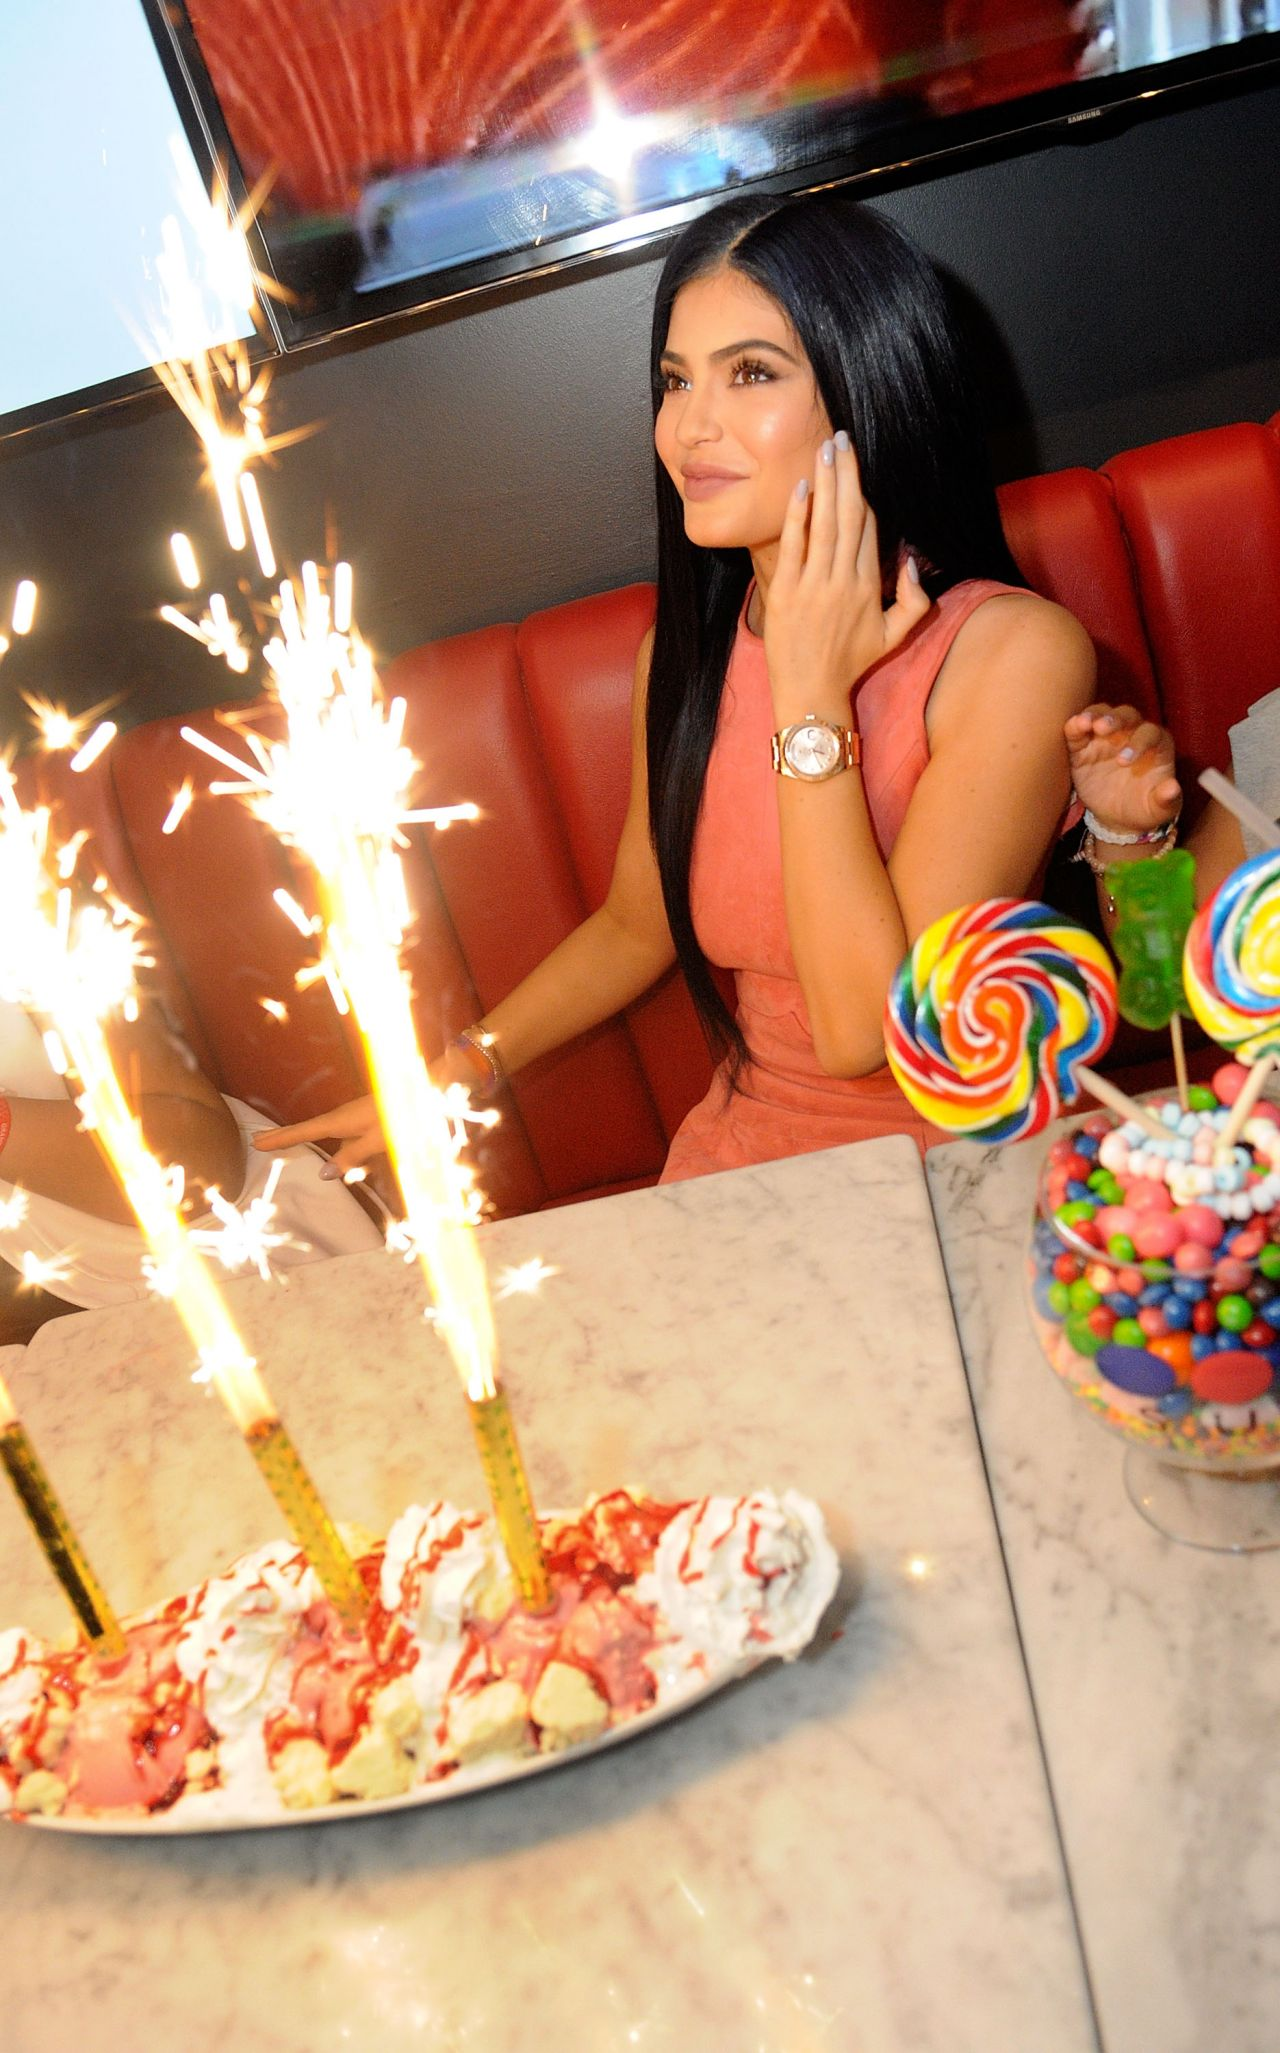 Kylie Jenner Opening Of The Sugar Factory In Orlando Fl